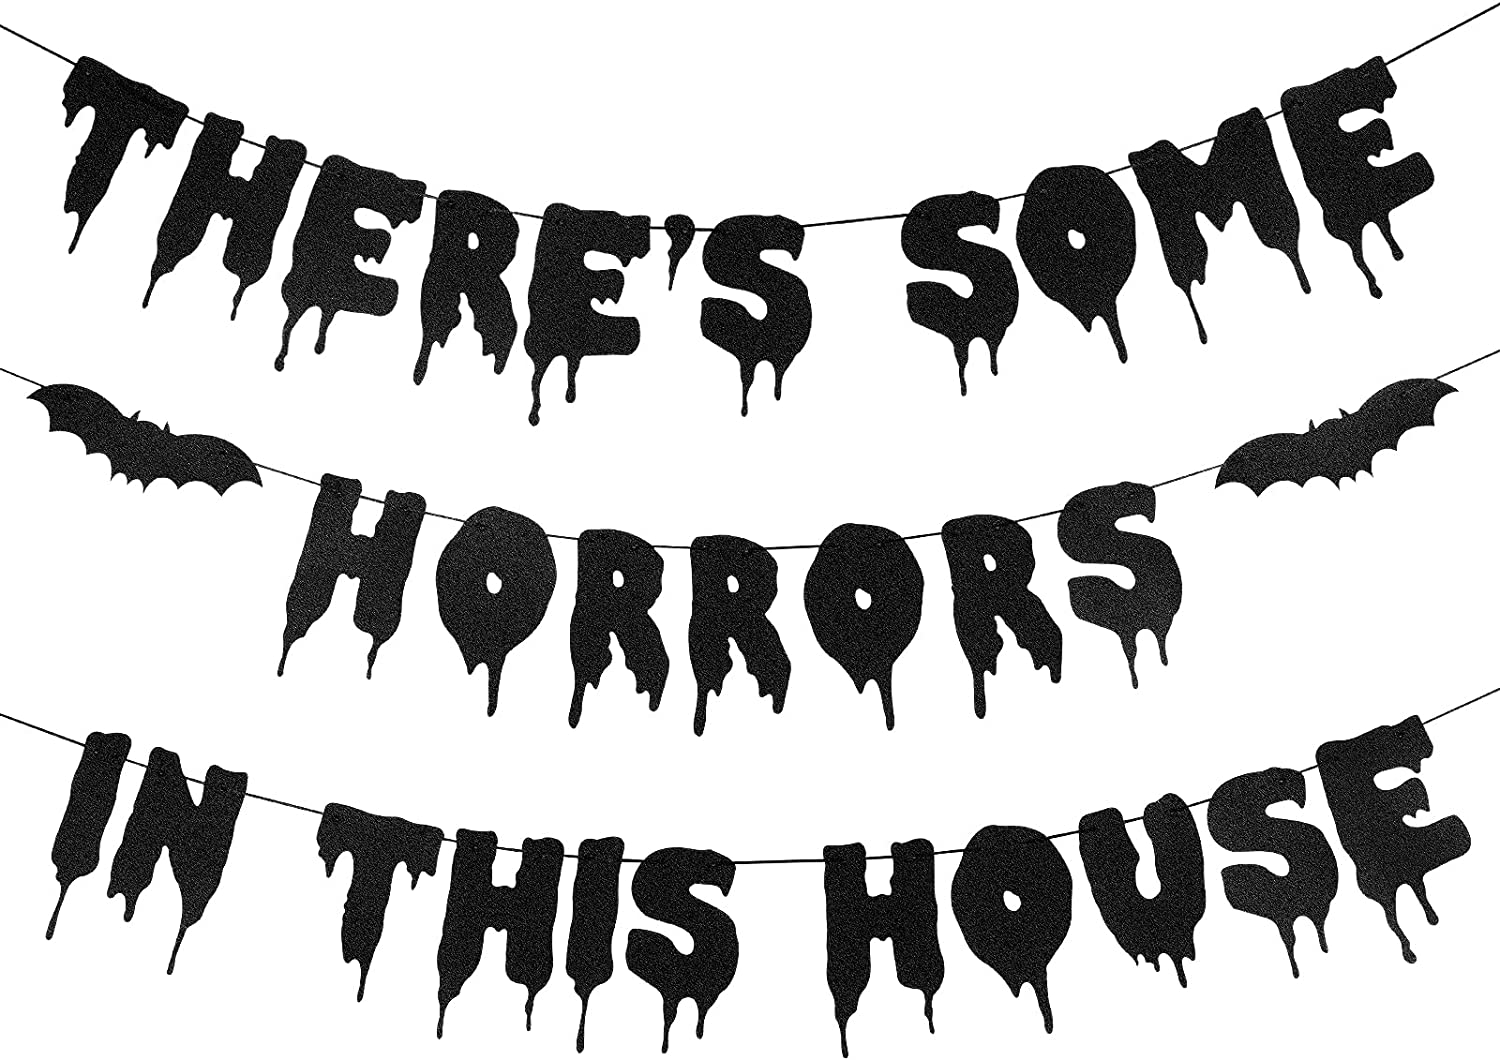 There's Some Horrors In This House Banner Black Glitter- Halloween Party Decorations, Bat Party Decorations,Bats for Halloween Decor, Halloween Haunted House Decor,Halloween Decor for Home Office Fireplace Mantel